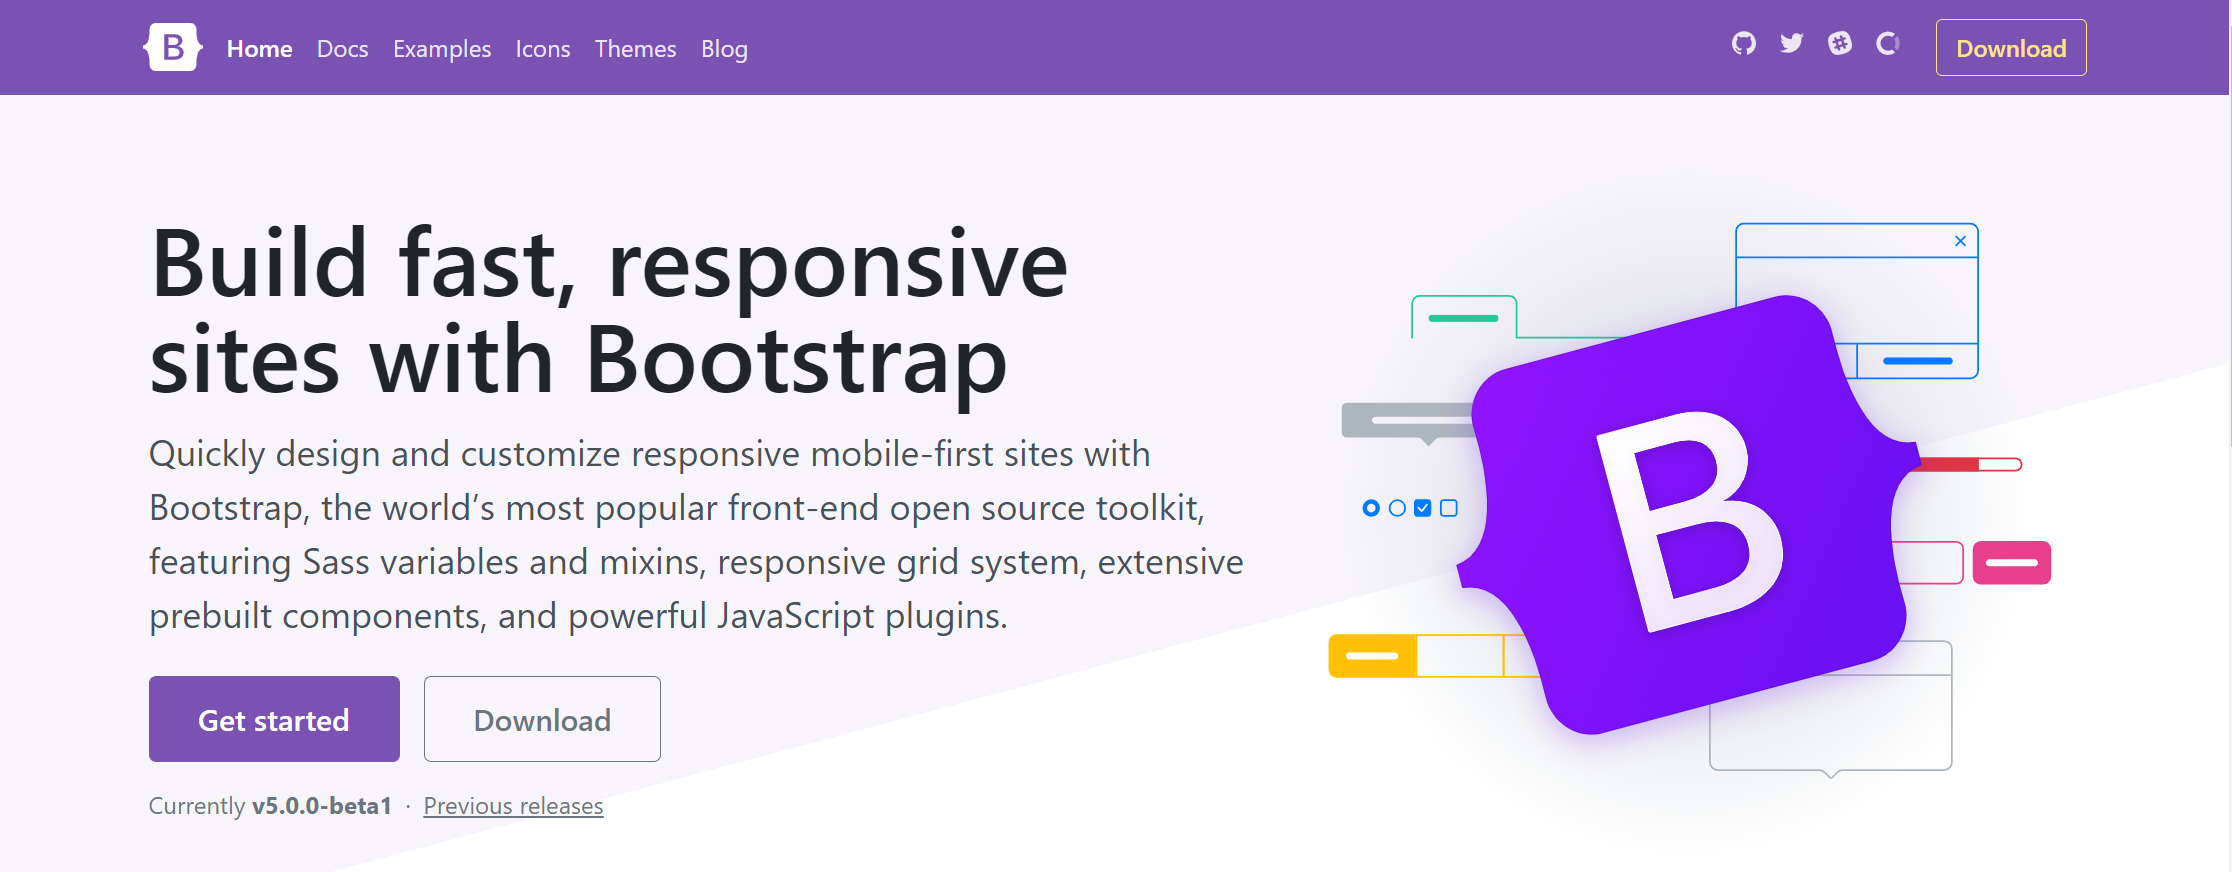 Bootstrap-cover-image